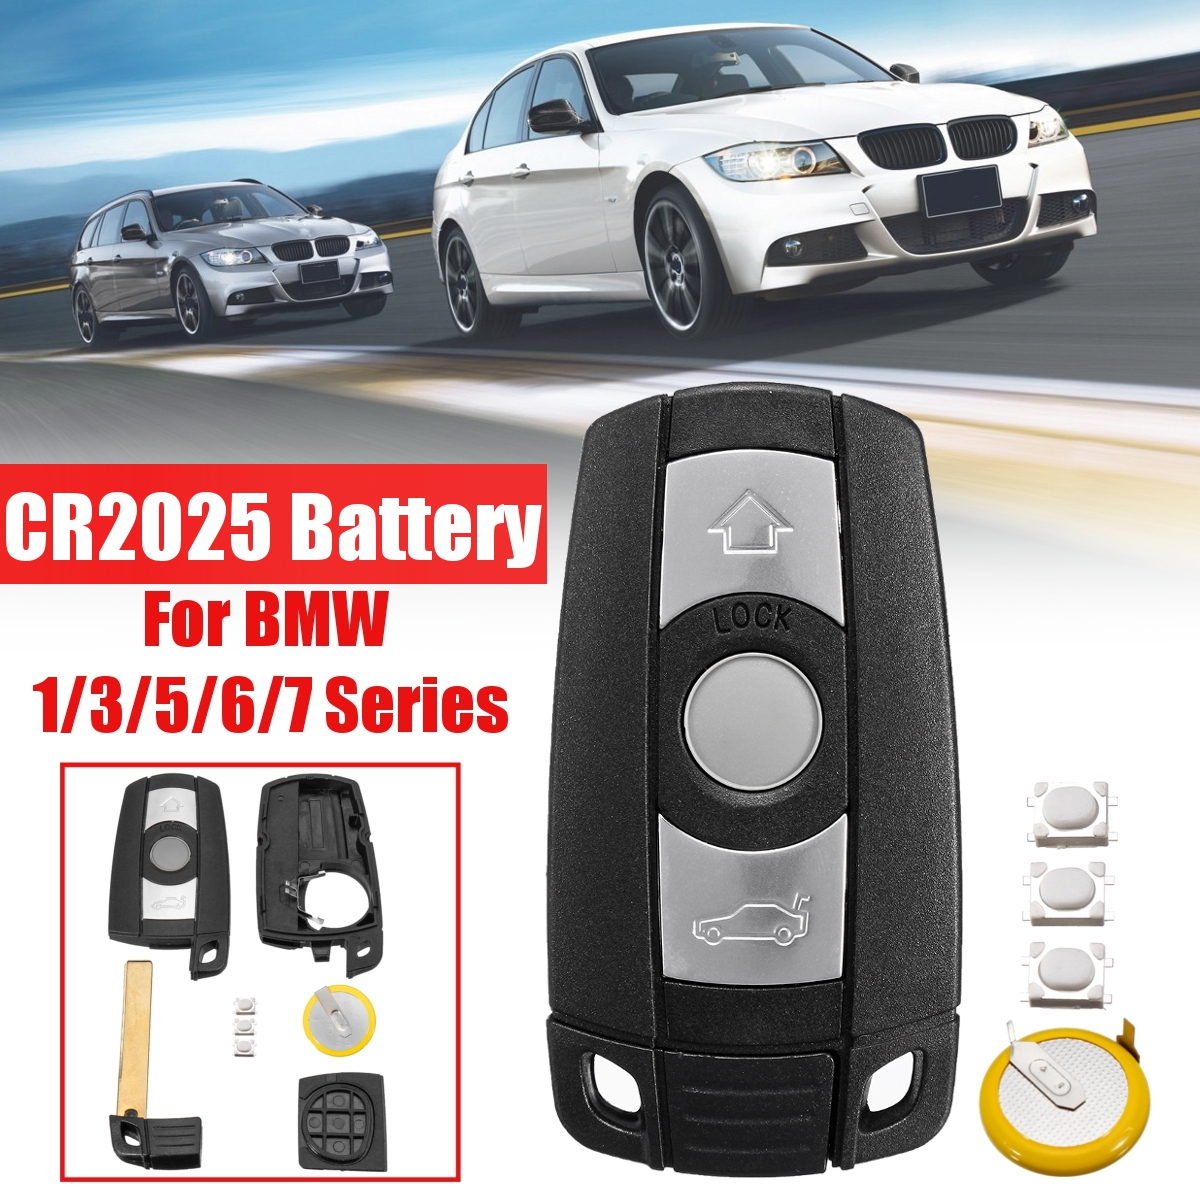 Car Key Fob Case for BMW 1 3 5 6 Series E60 E90 E91 E92 E70 E82 E88 E89 X5 X6 3 Button Remote Smart Key Shell Fob Cover